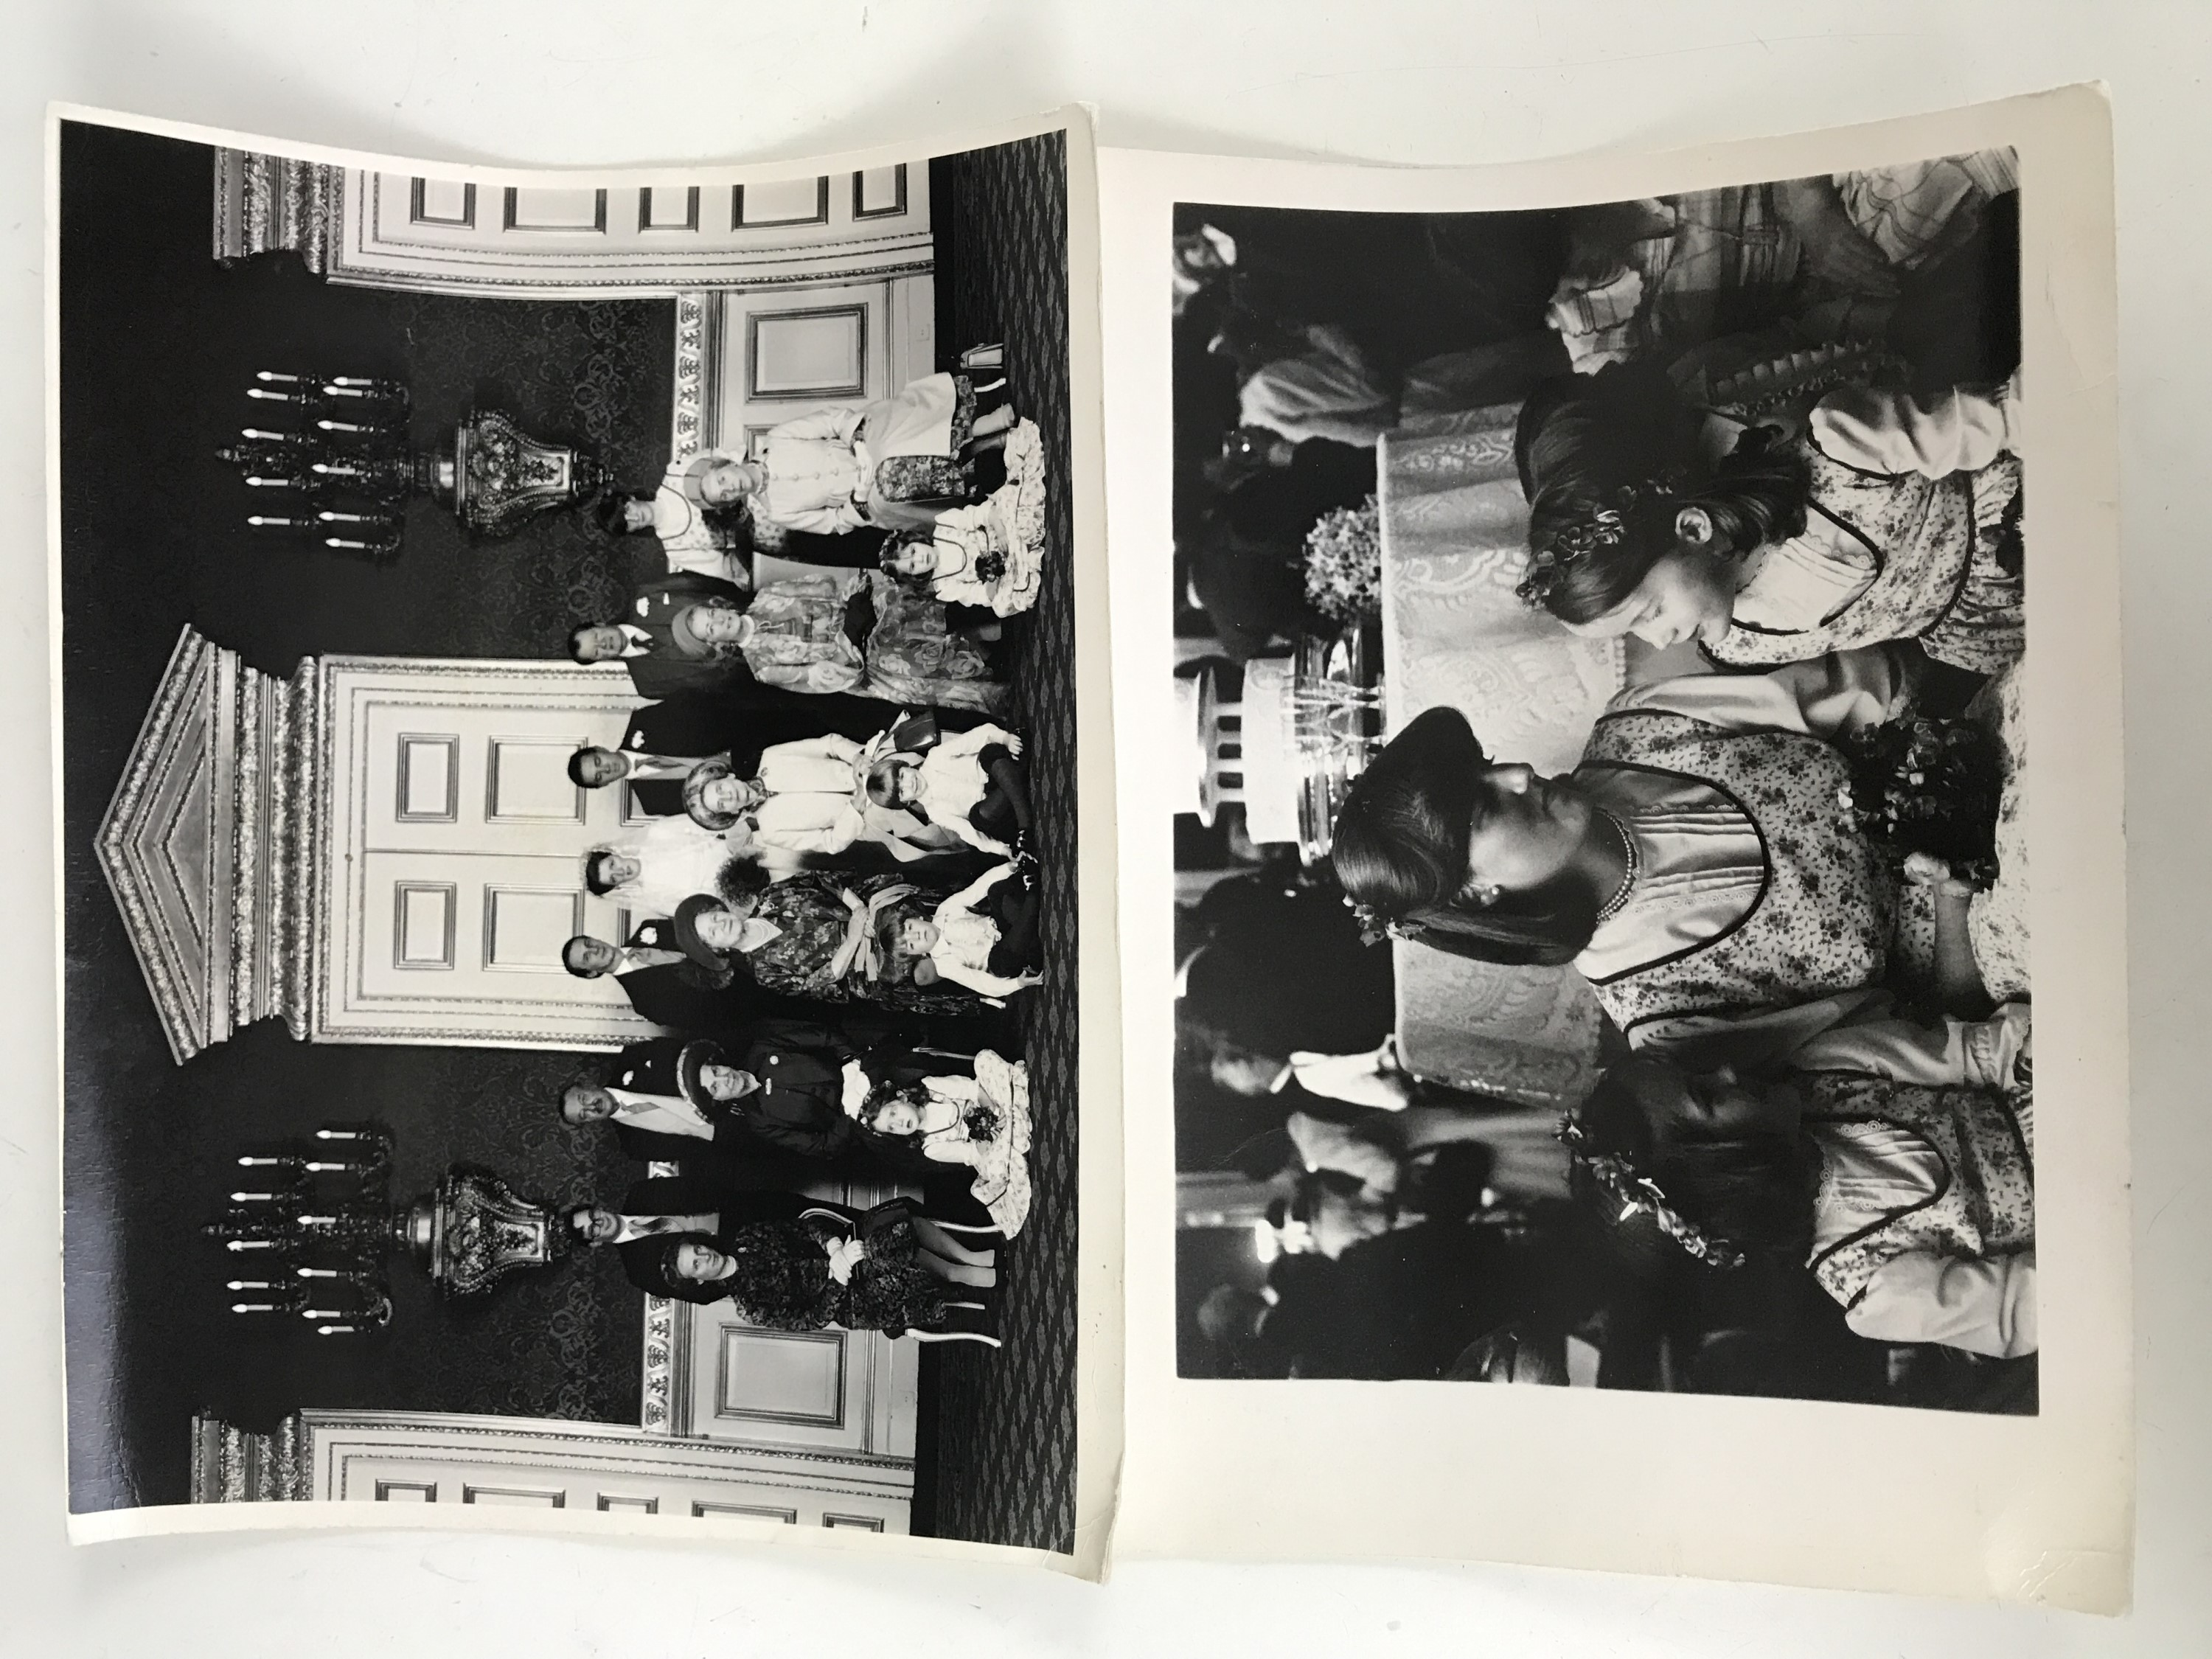 Lot 47 - [Diana, Princess of Wales 1961-1997] Two monochrome photographs of Lady Diana Spencer, later the